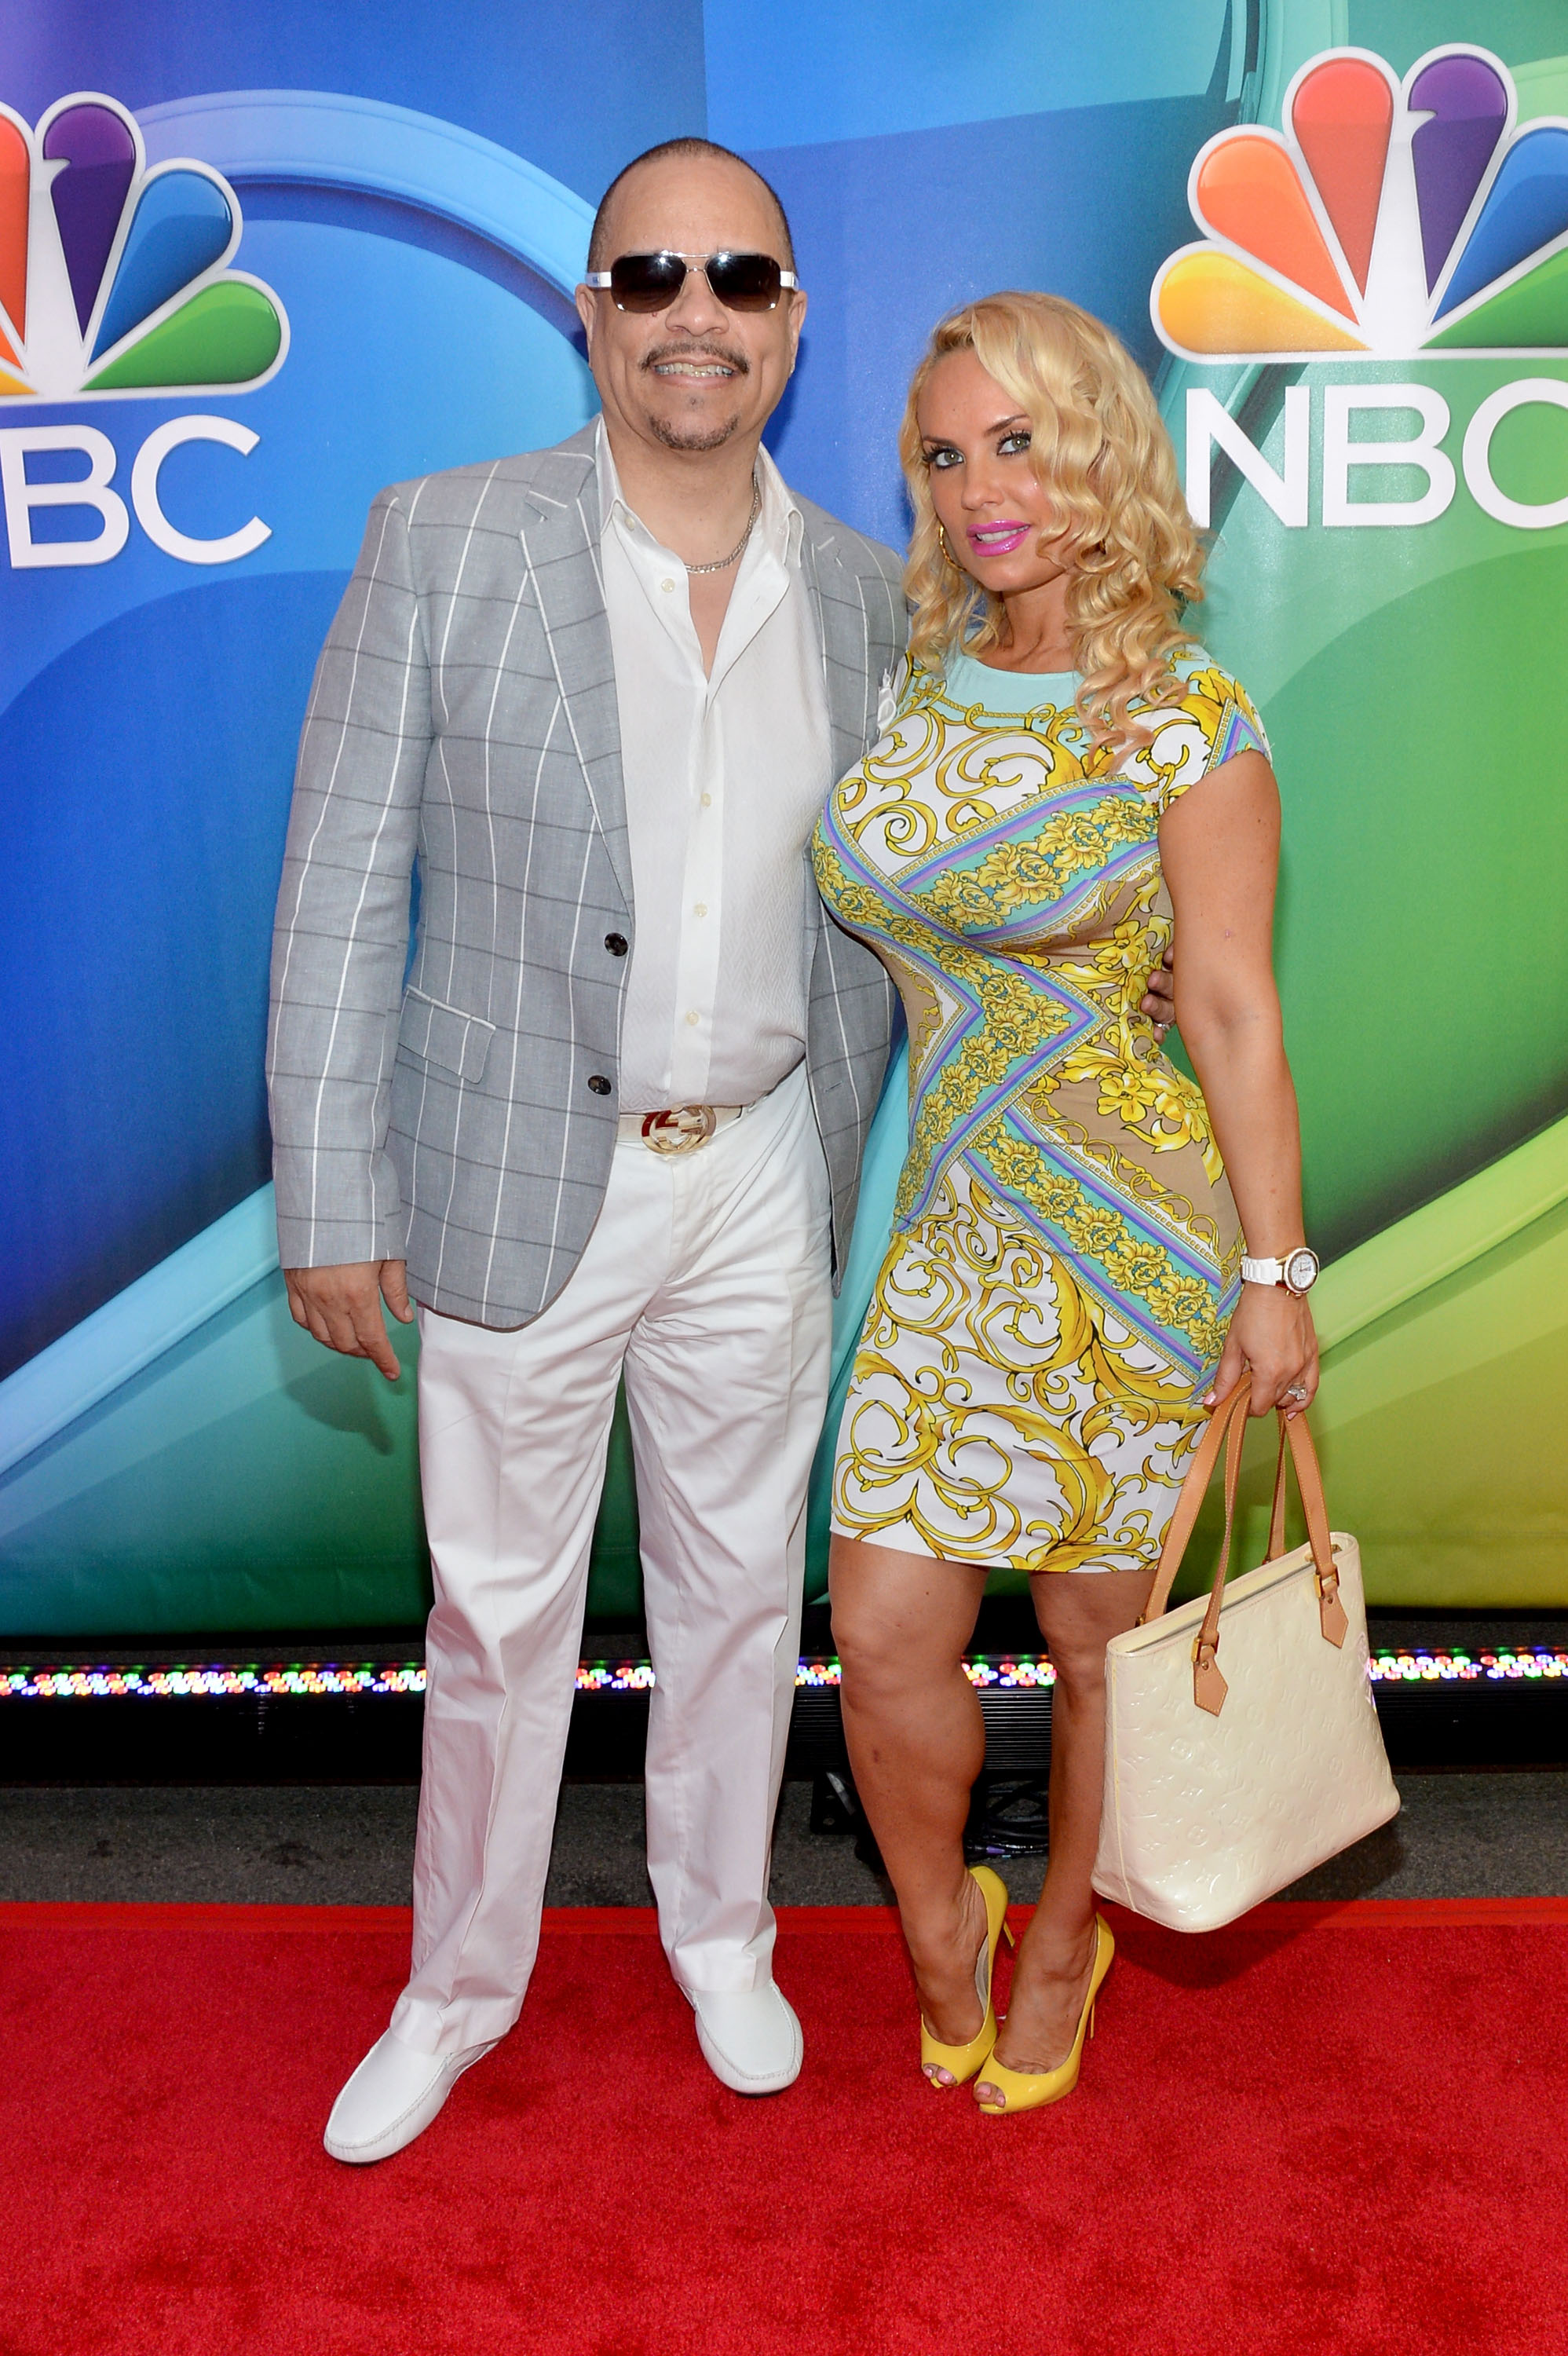 nbc radio_Ice-T And Coco Reveal Baby's Sex And Name During Premiere Episode Of Their New Talk Show